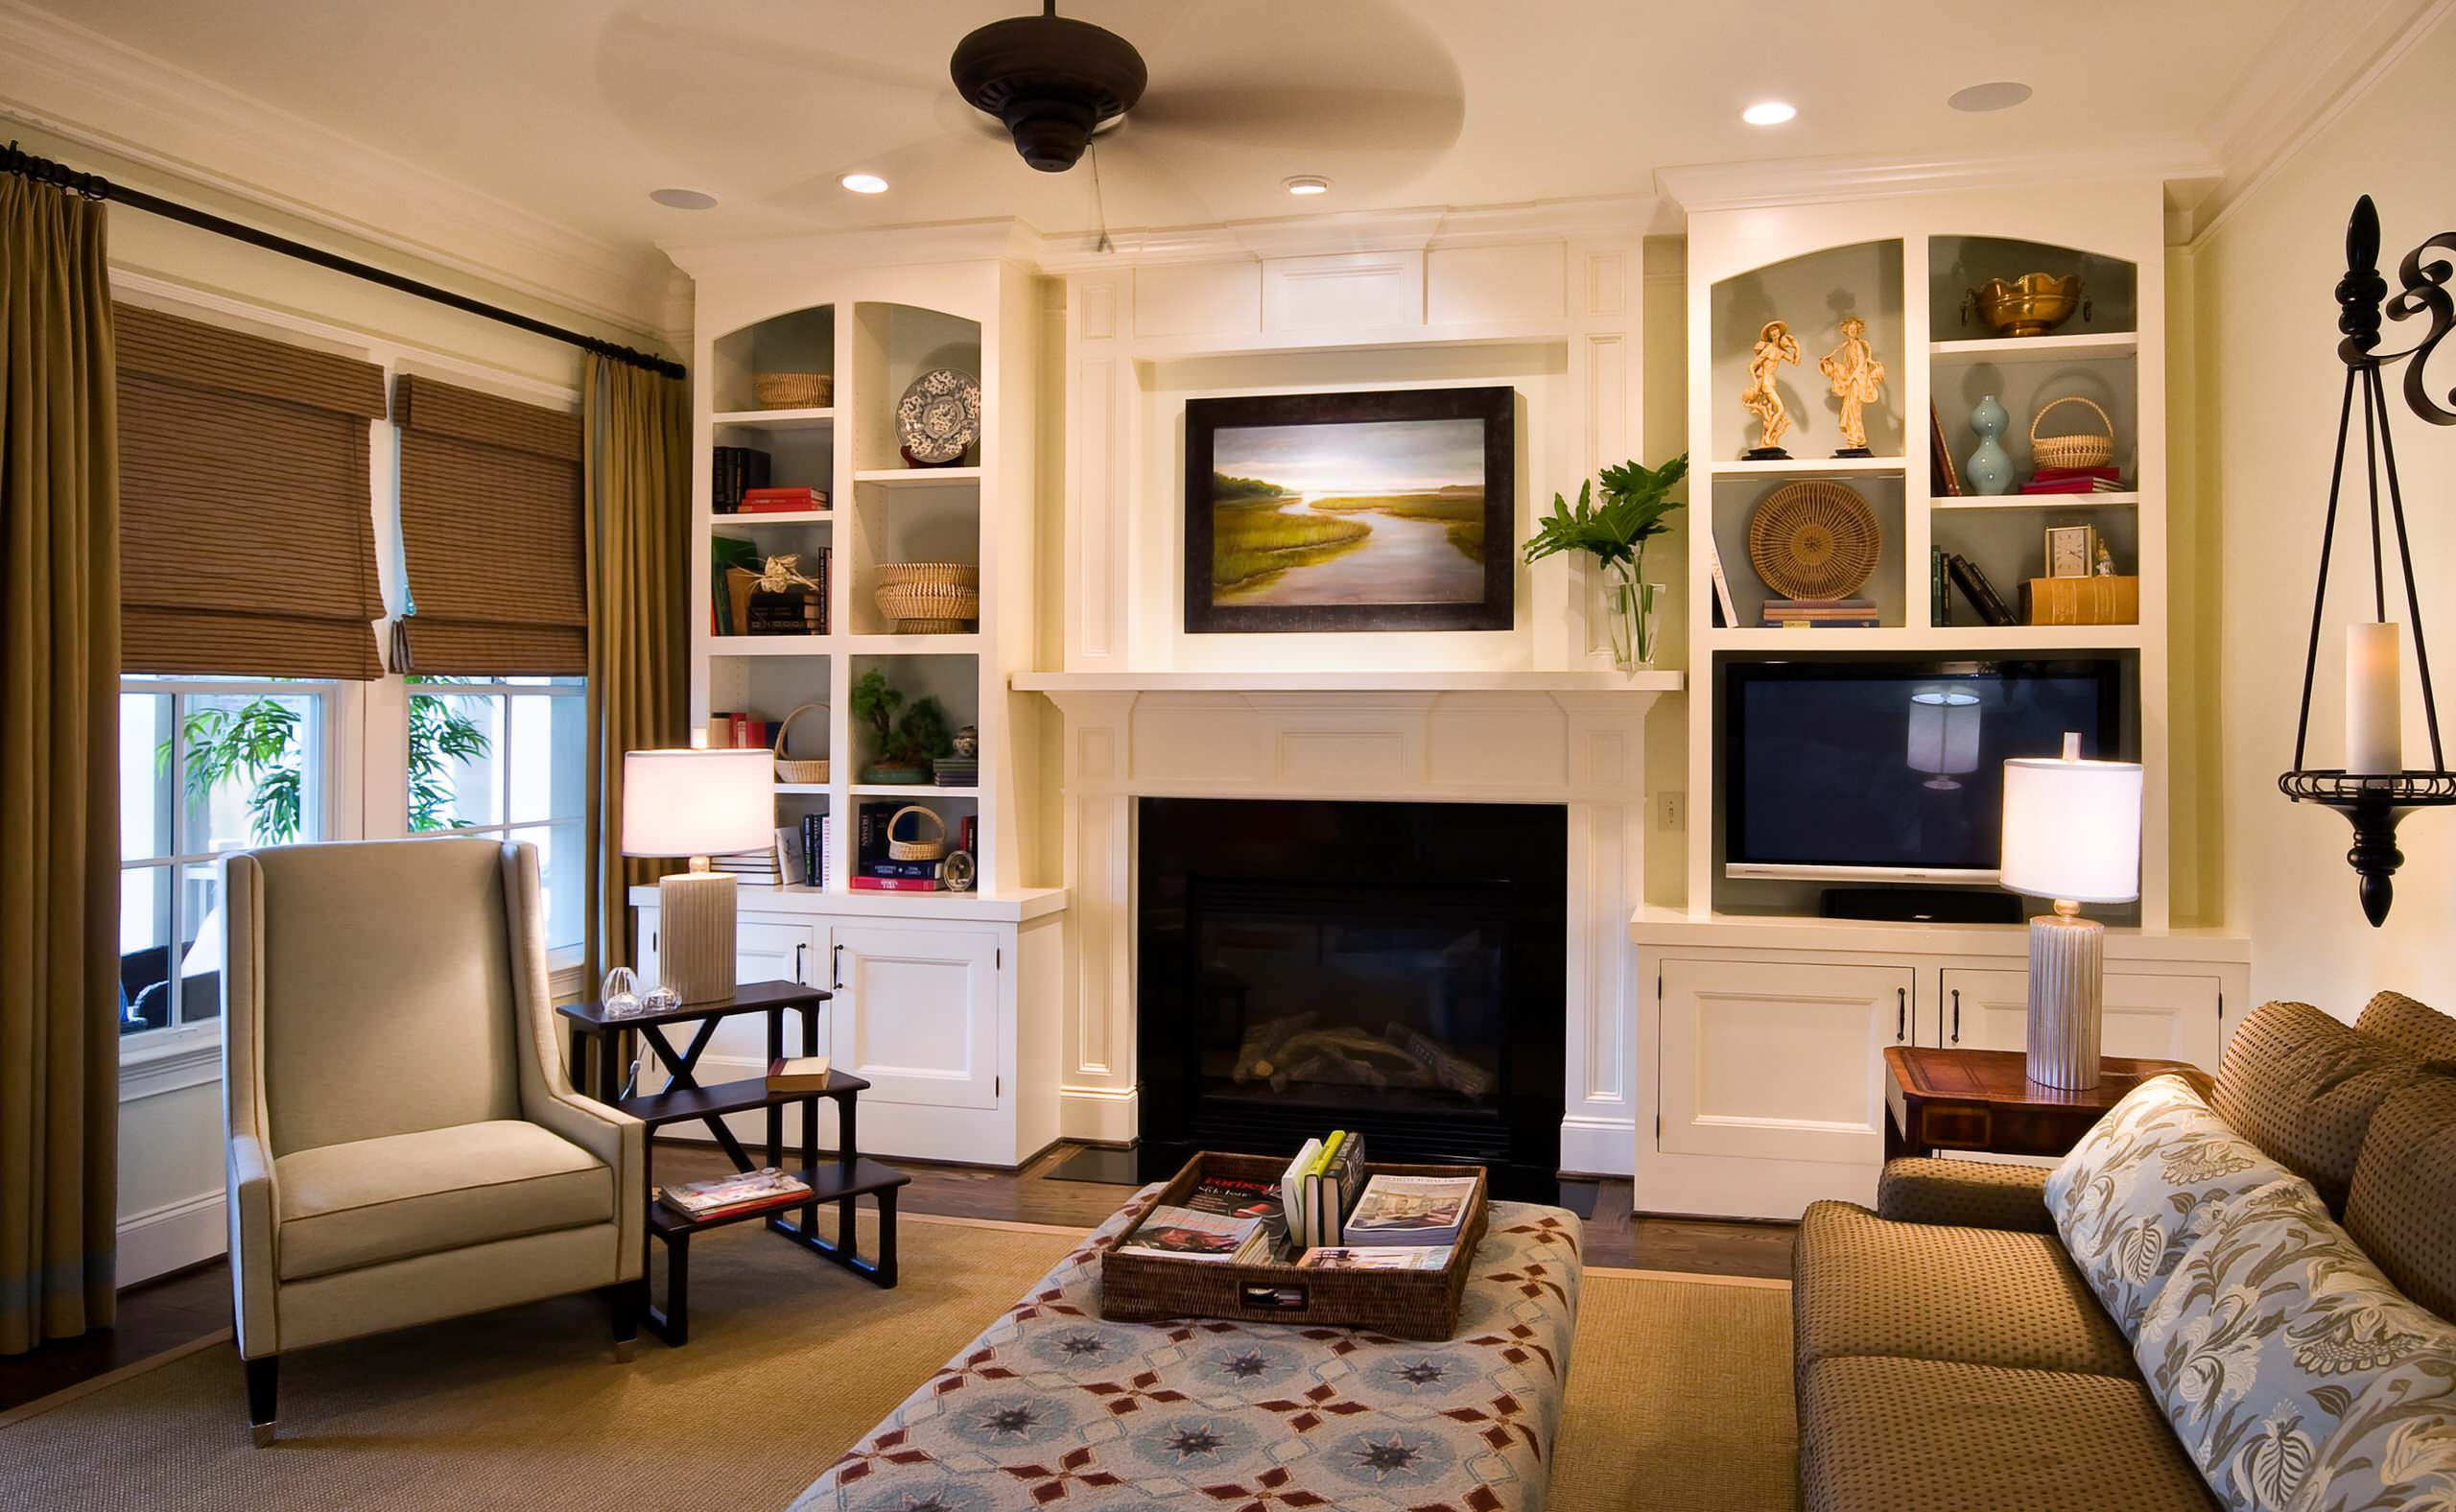 75 Beautiful Traditional Living Room Pictures Ideas March 2021 Houzz